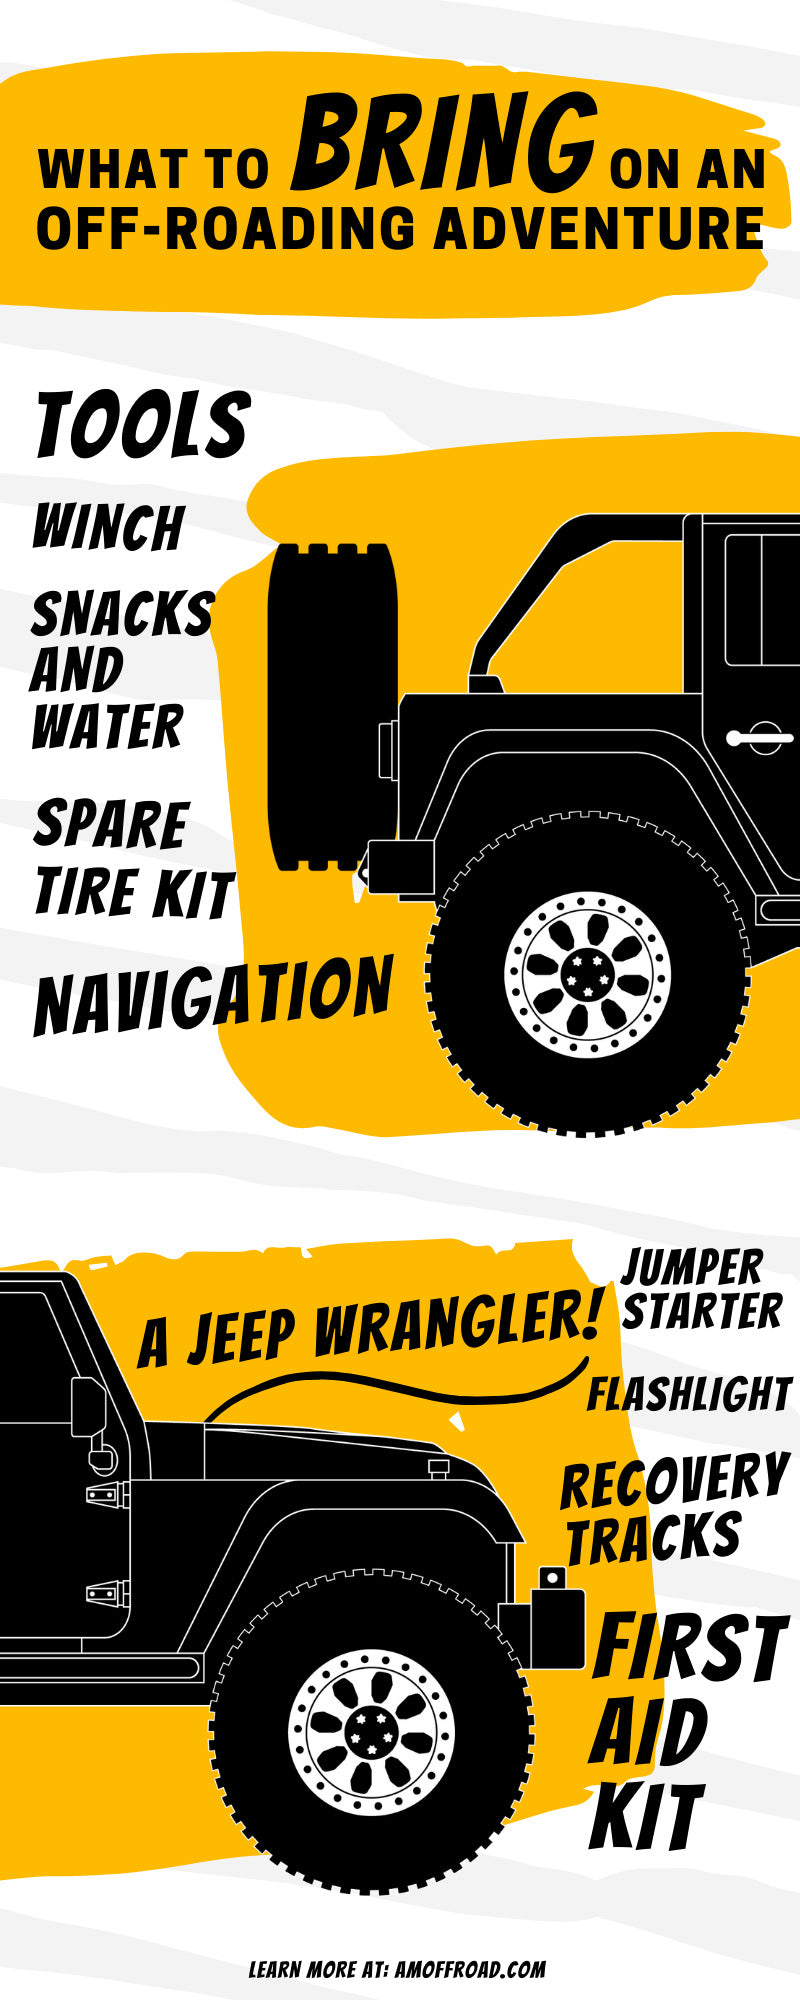 What To Bring on an Off-Roading Adventure